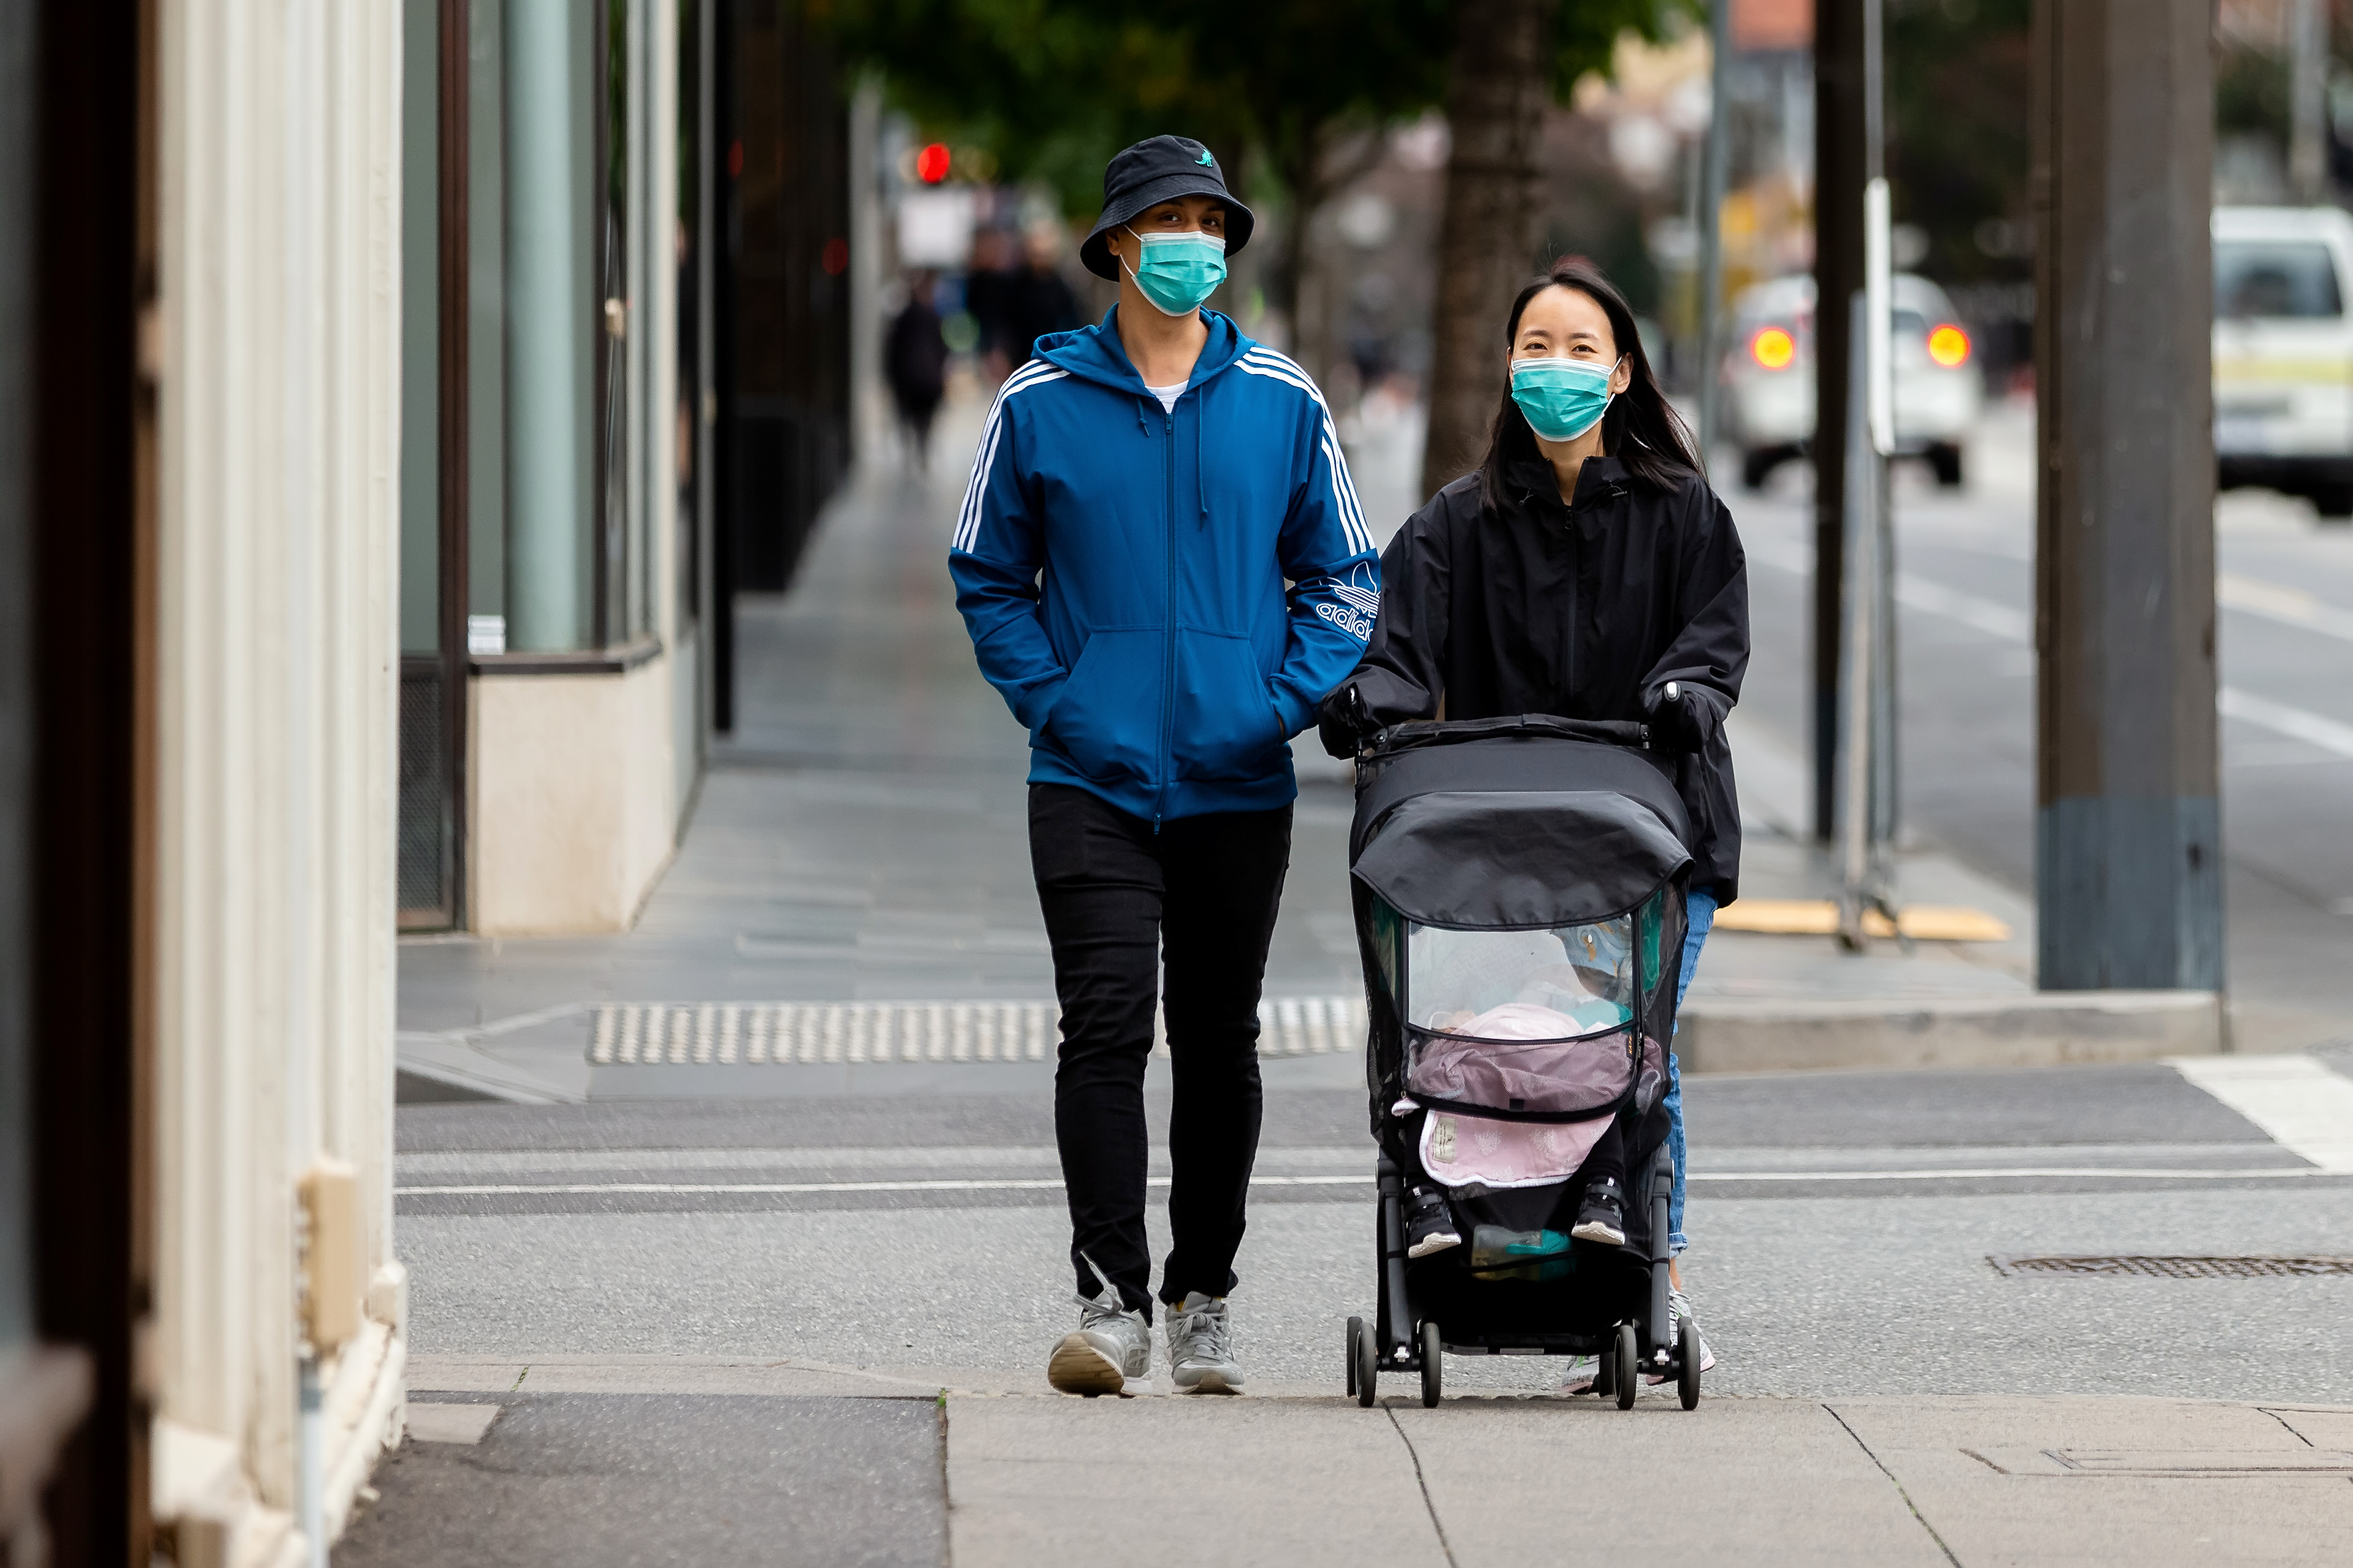 MELBOURNE, AUSTRALIA - APRIL 14: A couple walk down Chapel Street wearing masks during COVID 19 on 14 April, 2020 in Melbourne, Australia. (Photo by Speed Media/Icon Sportswire via Getty Images)